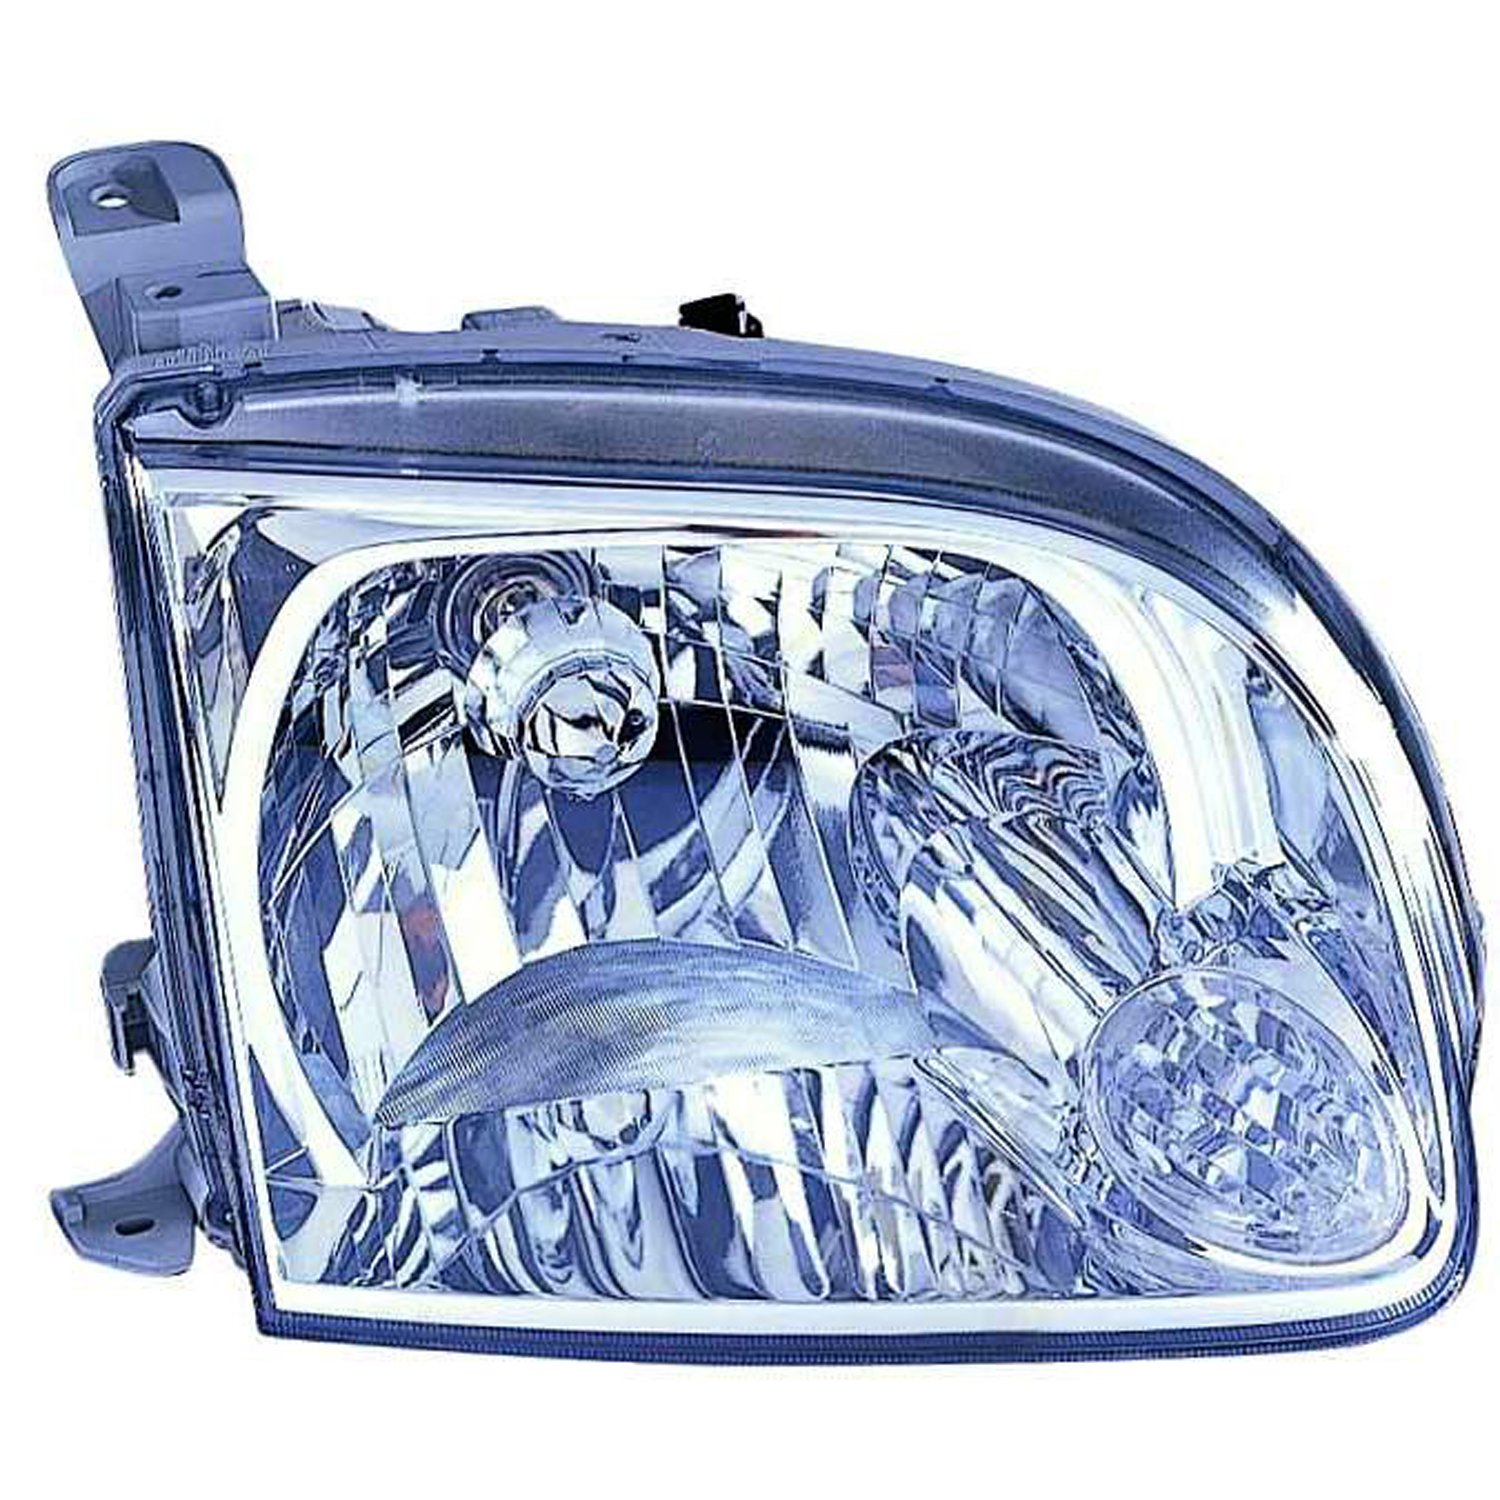 OE Replacement Headlight Assembly TOYOTA TUNDRA PICKUP 2005-2006 Multiple Manufacturers TO2503166N Partslink TO2503166